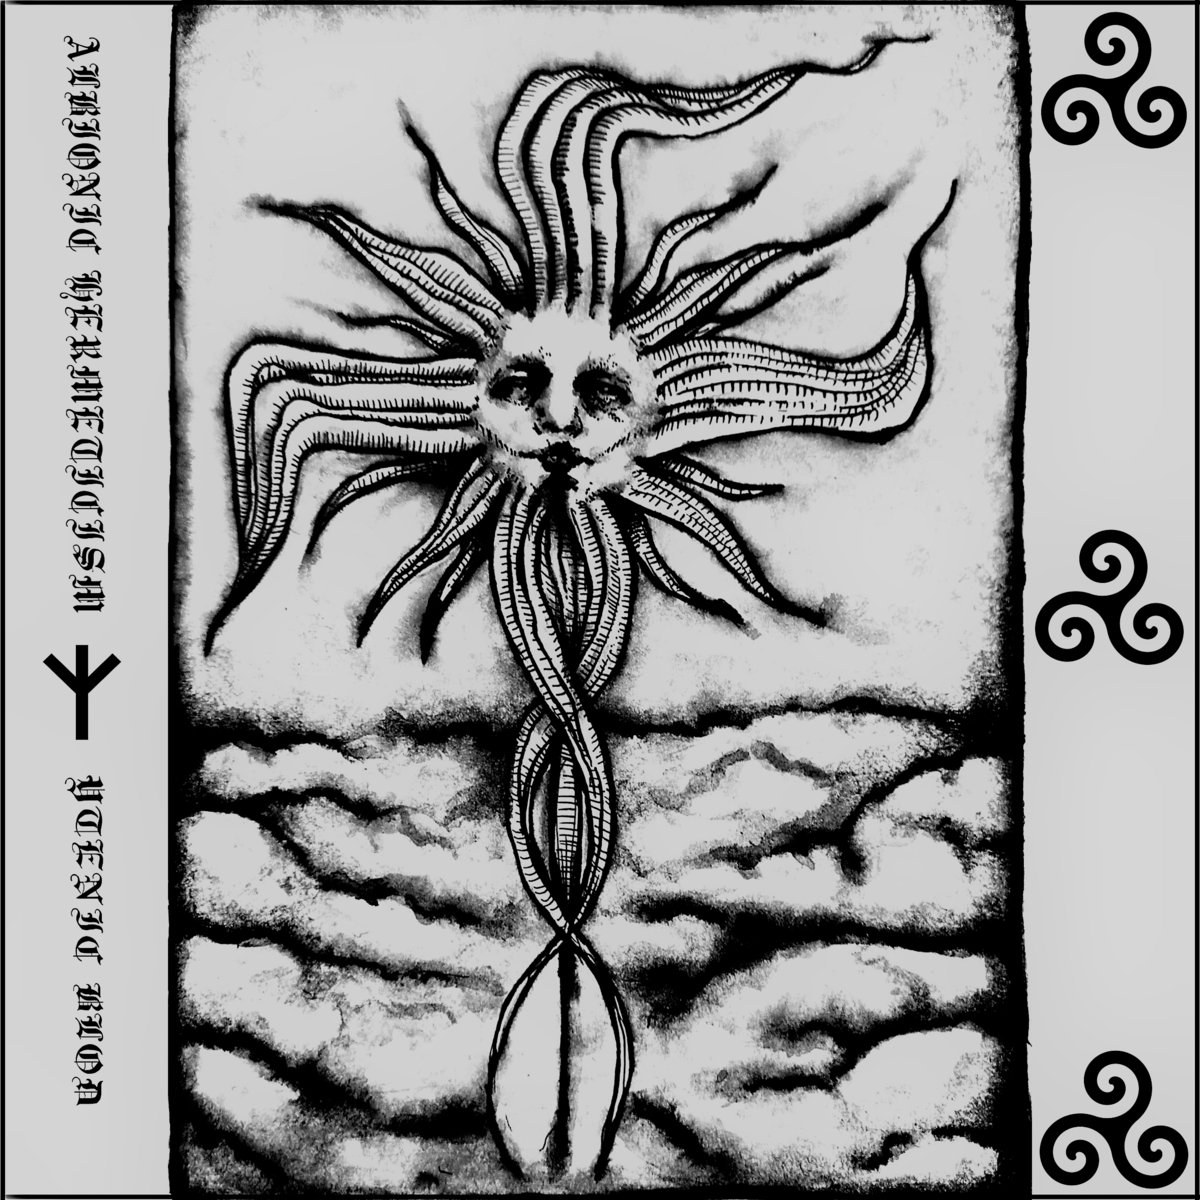 Review for Albionic Hermeticism - Ytenic Blód